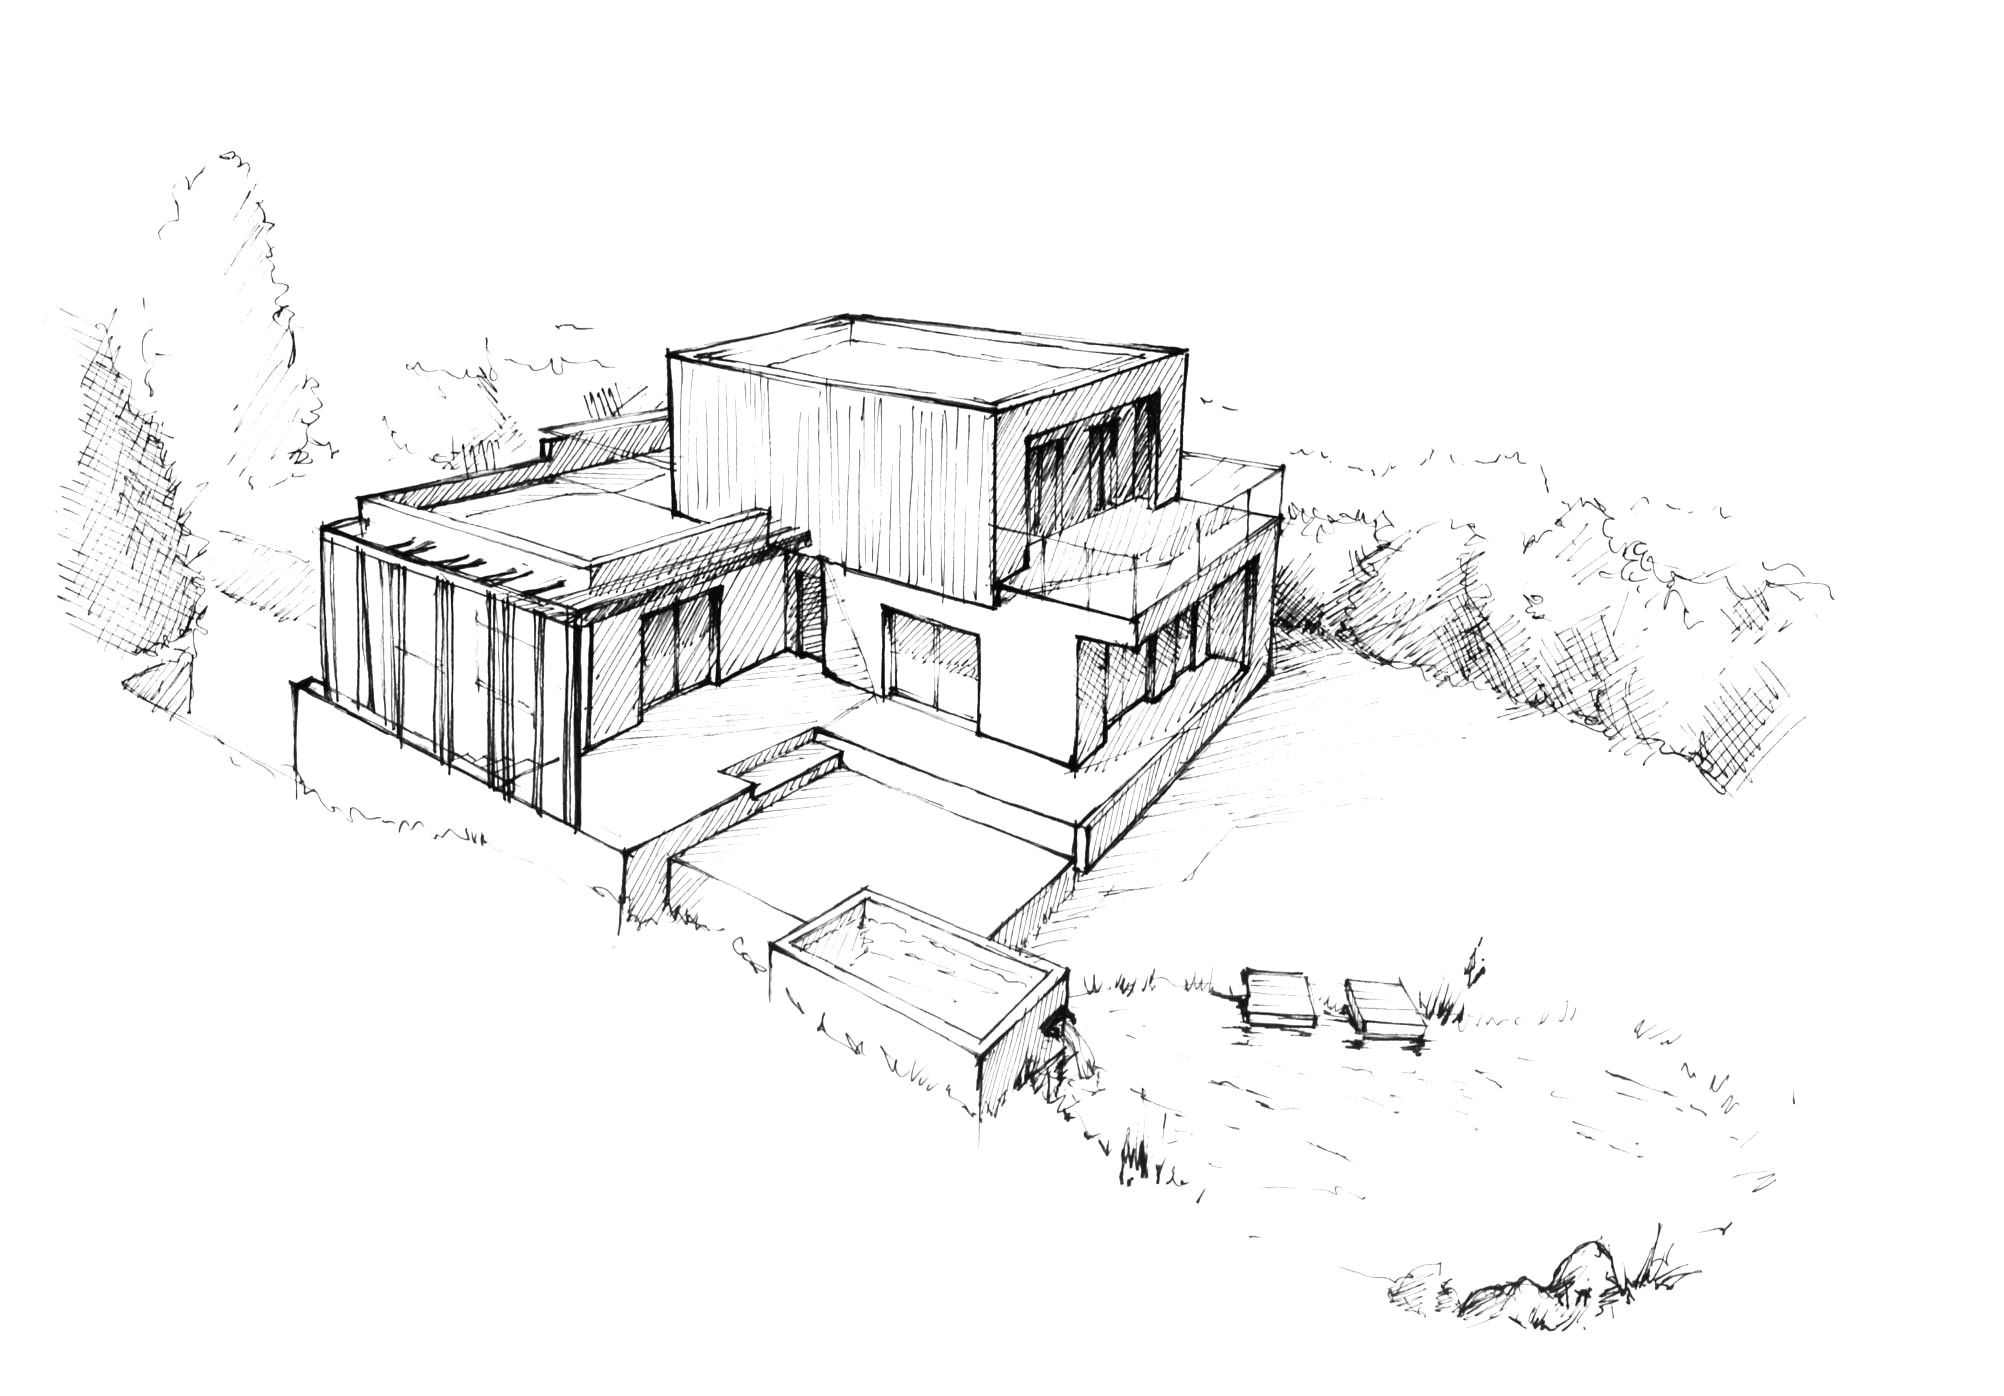 House In Perspective Drawing Idees Coloring Pages Abstract Coloring Pages Designs Coloring Books